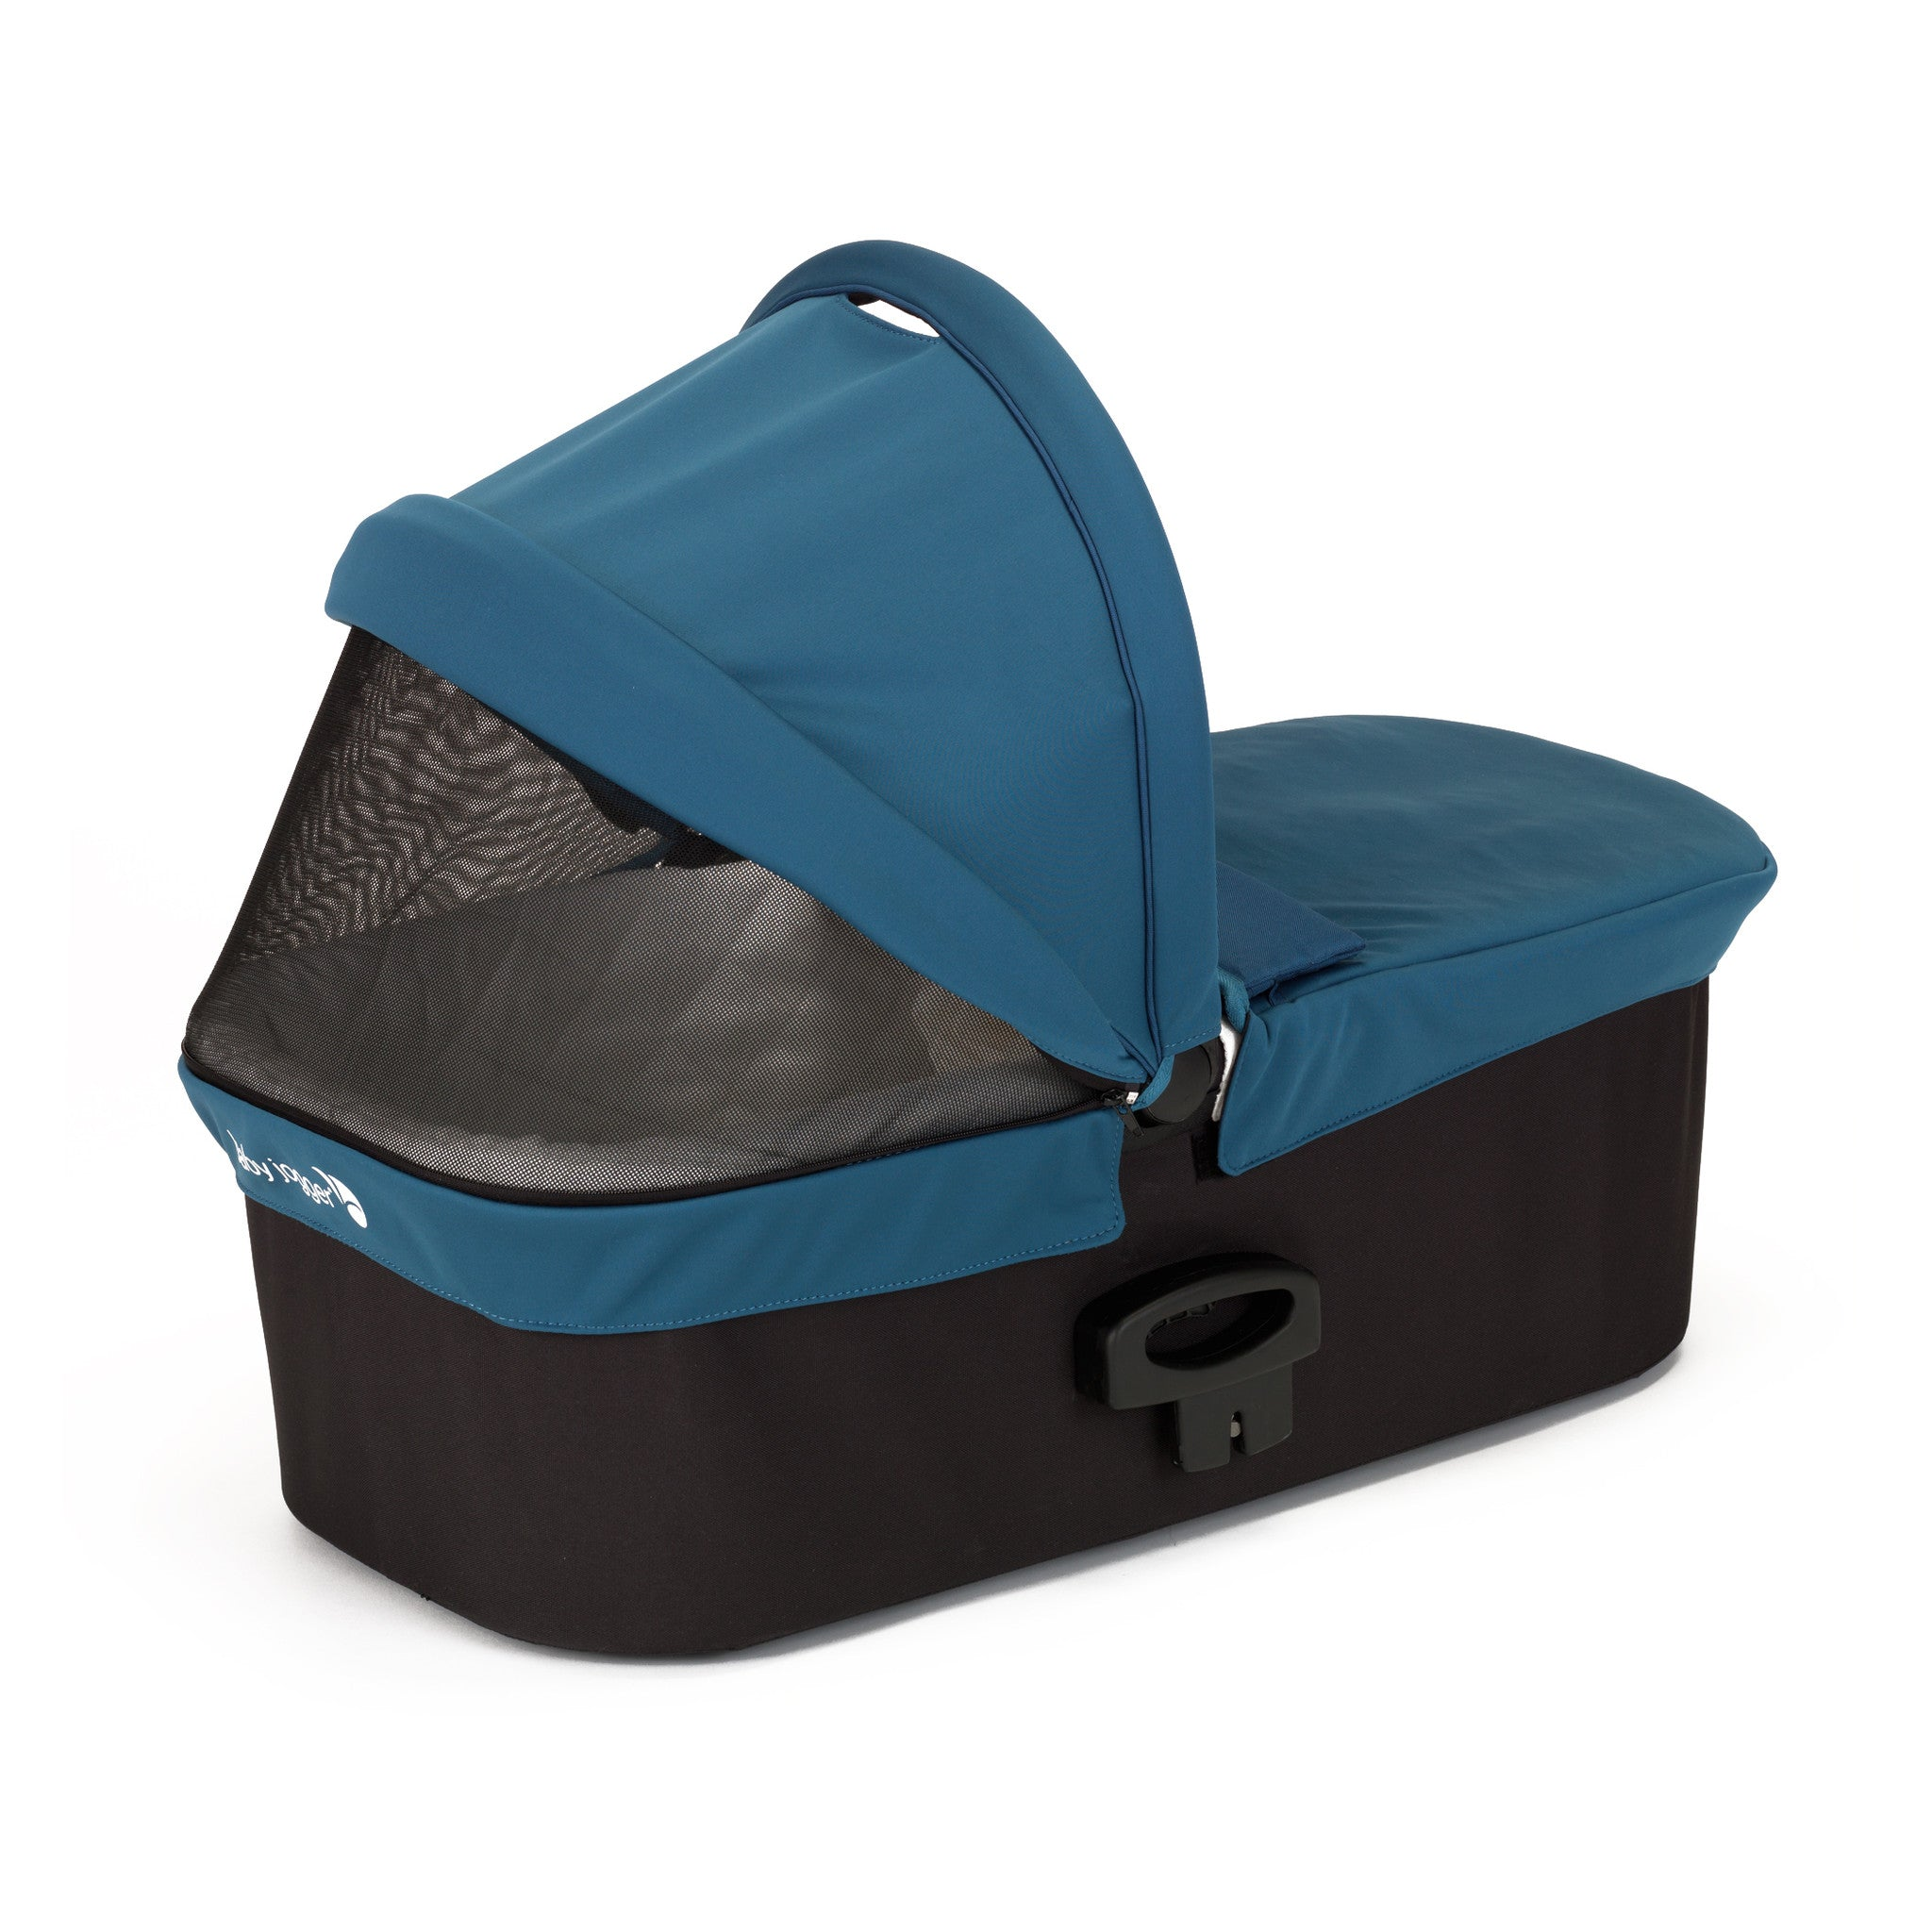 ... Baby Jogger Deluxe Pram - PeppyParents.com - 2 ...  sc 1 st  PeppyParents : baby jogger sun canopy - memphite.com